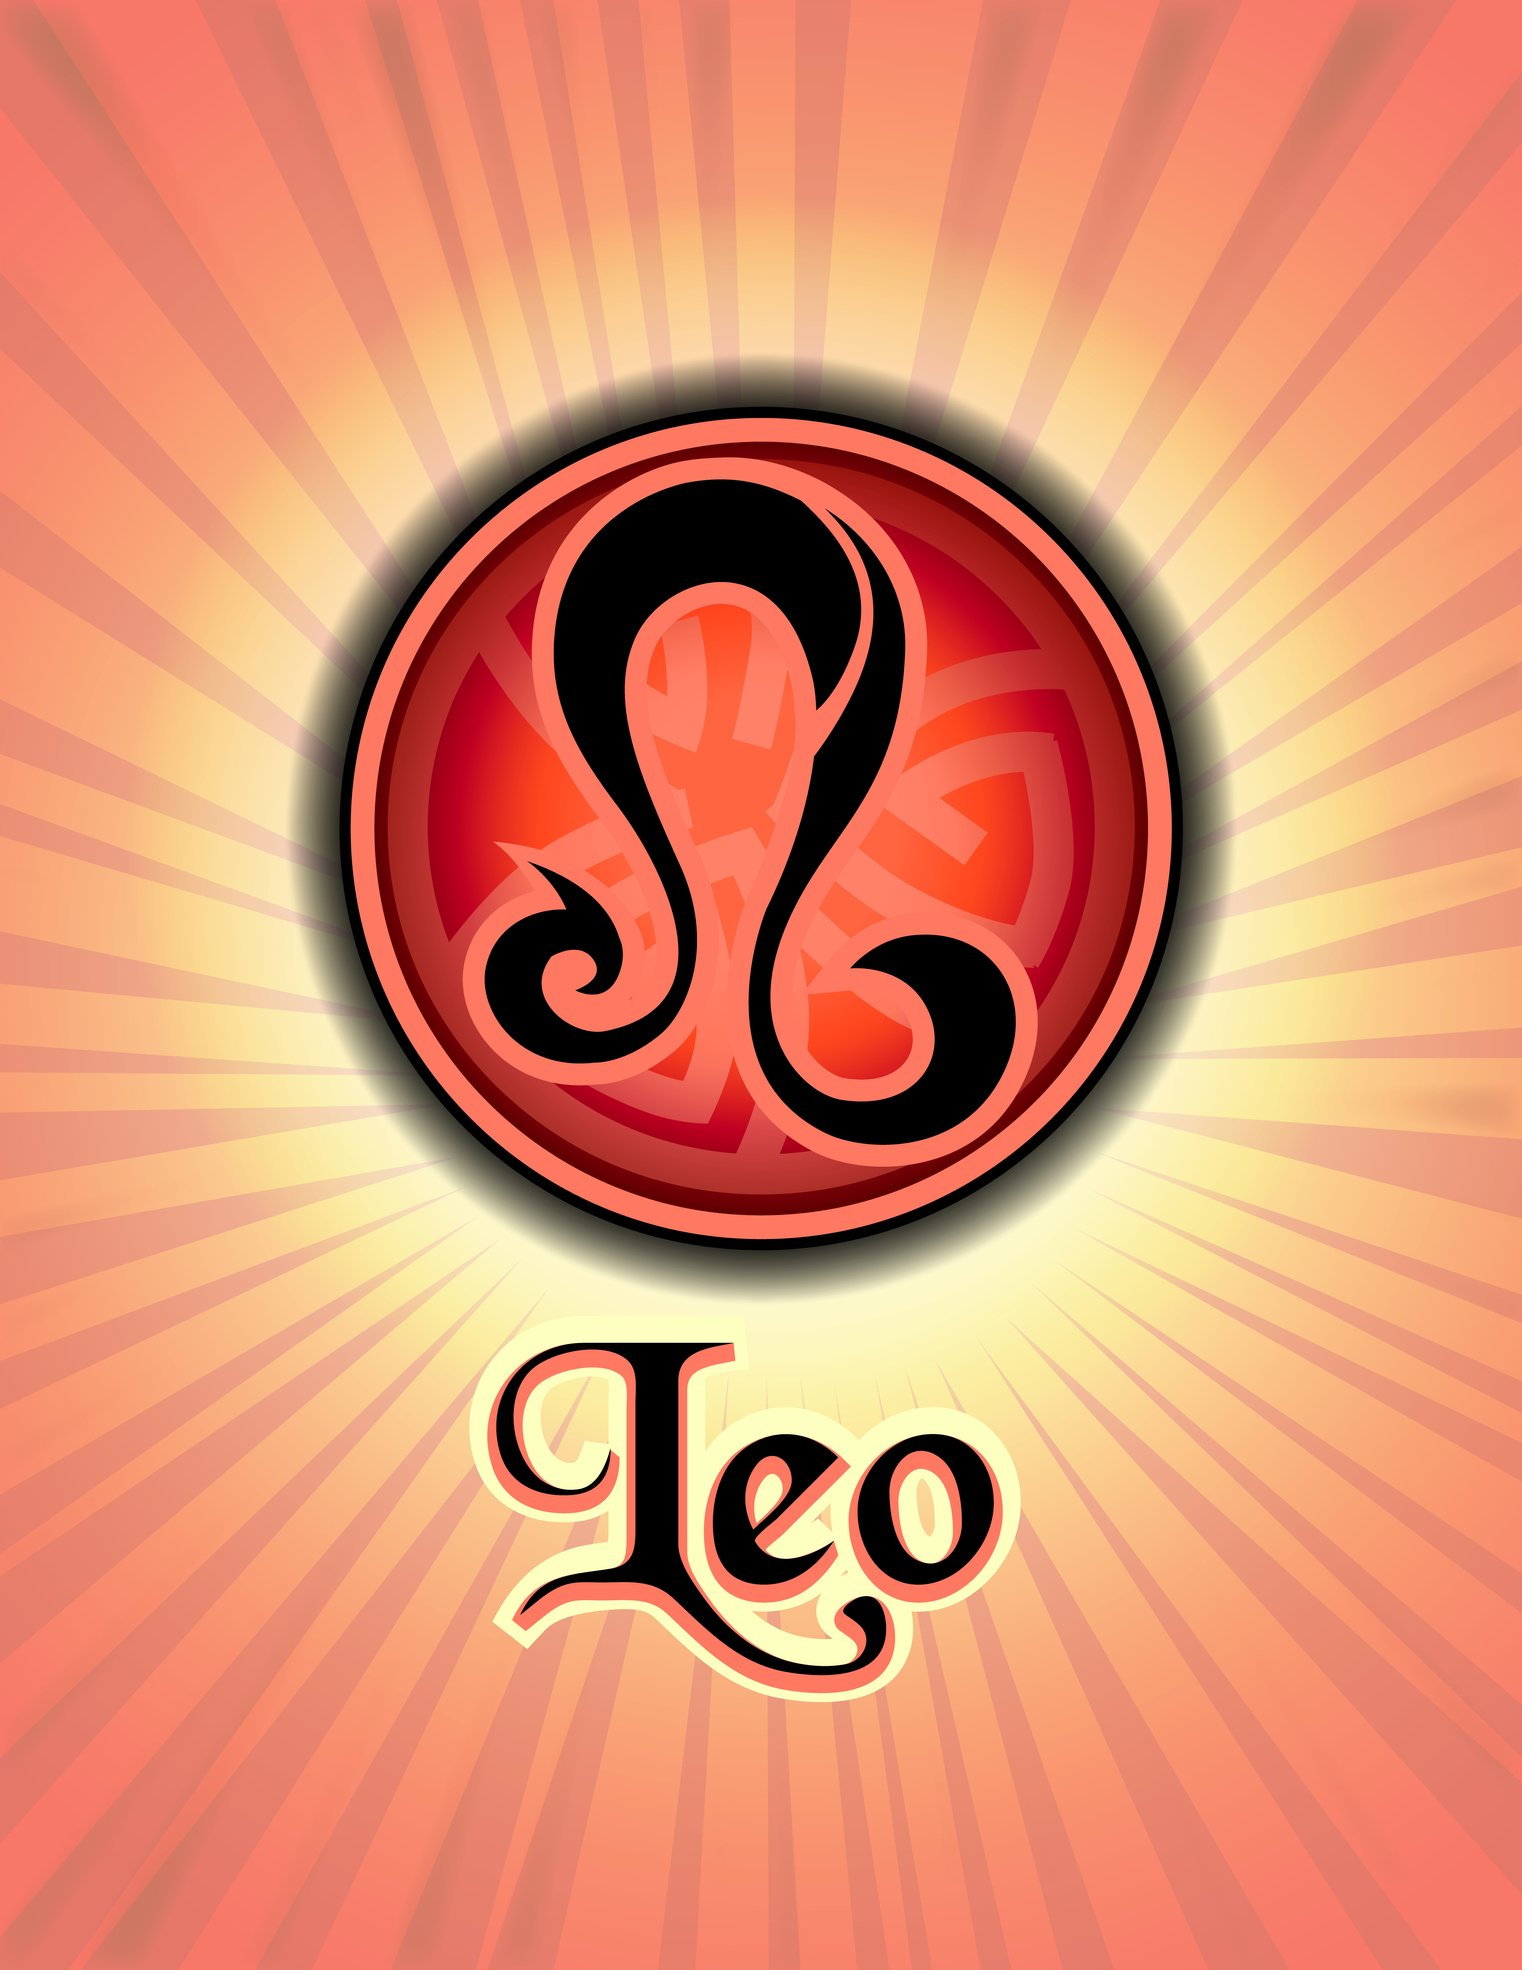 Astrology Leo Zodiac with Red Glow | Photo: Getty Images